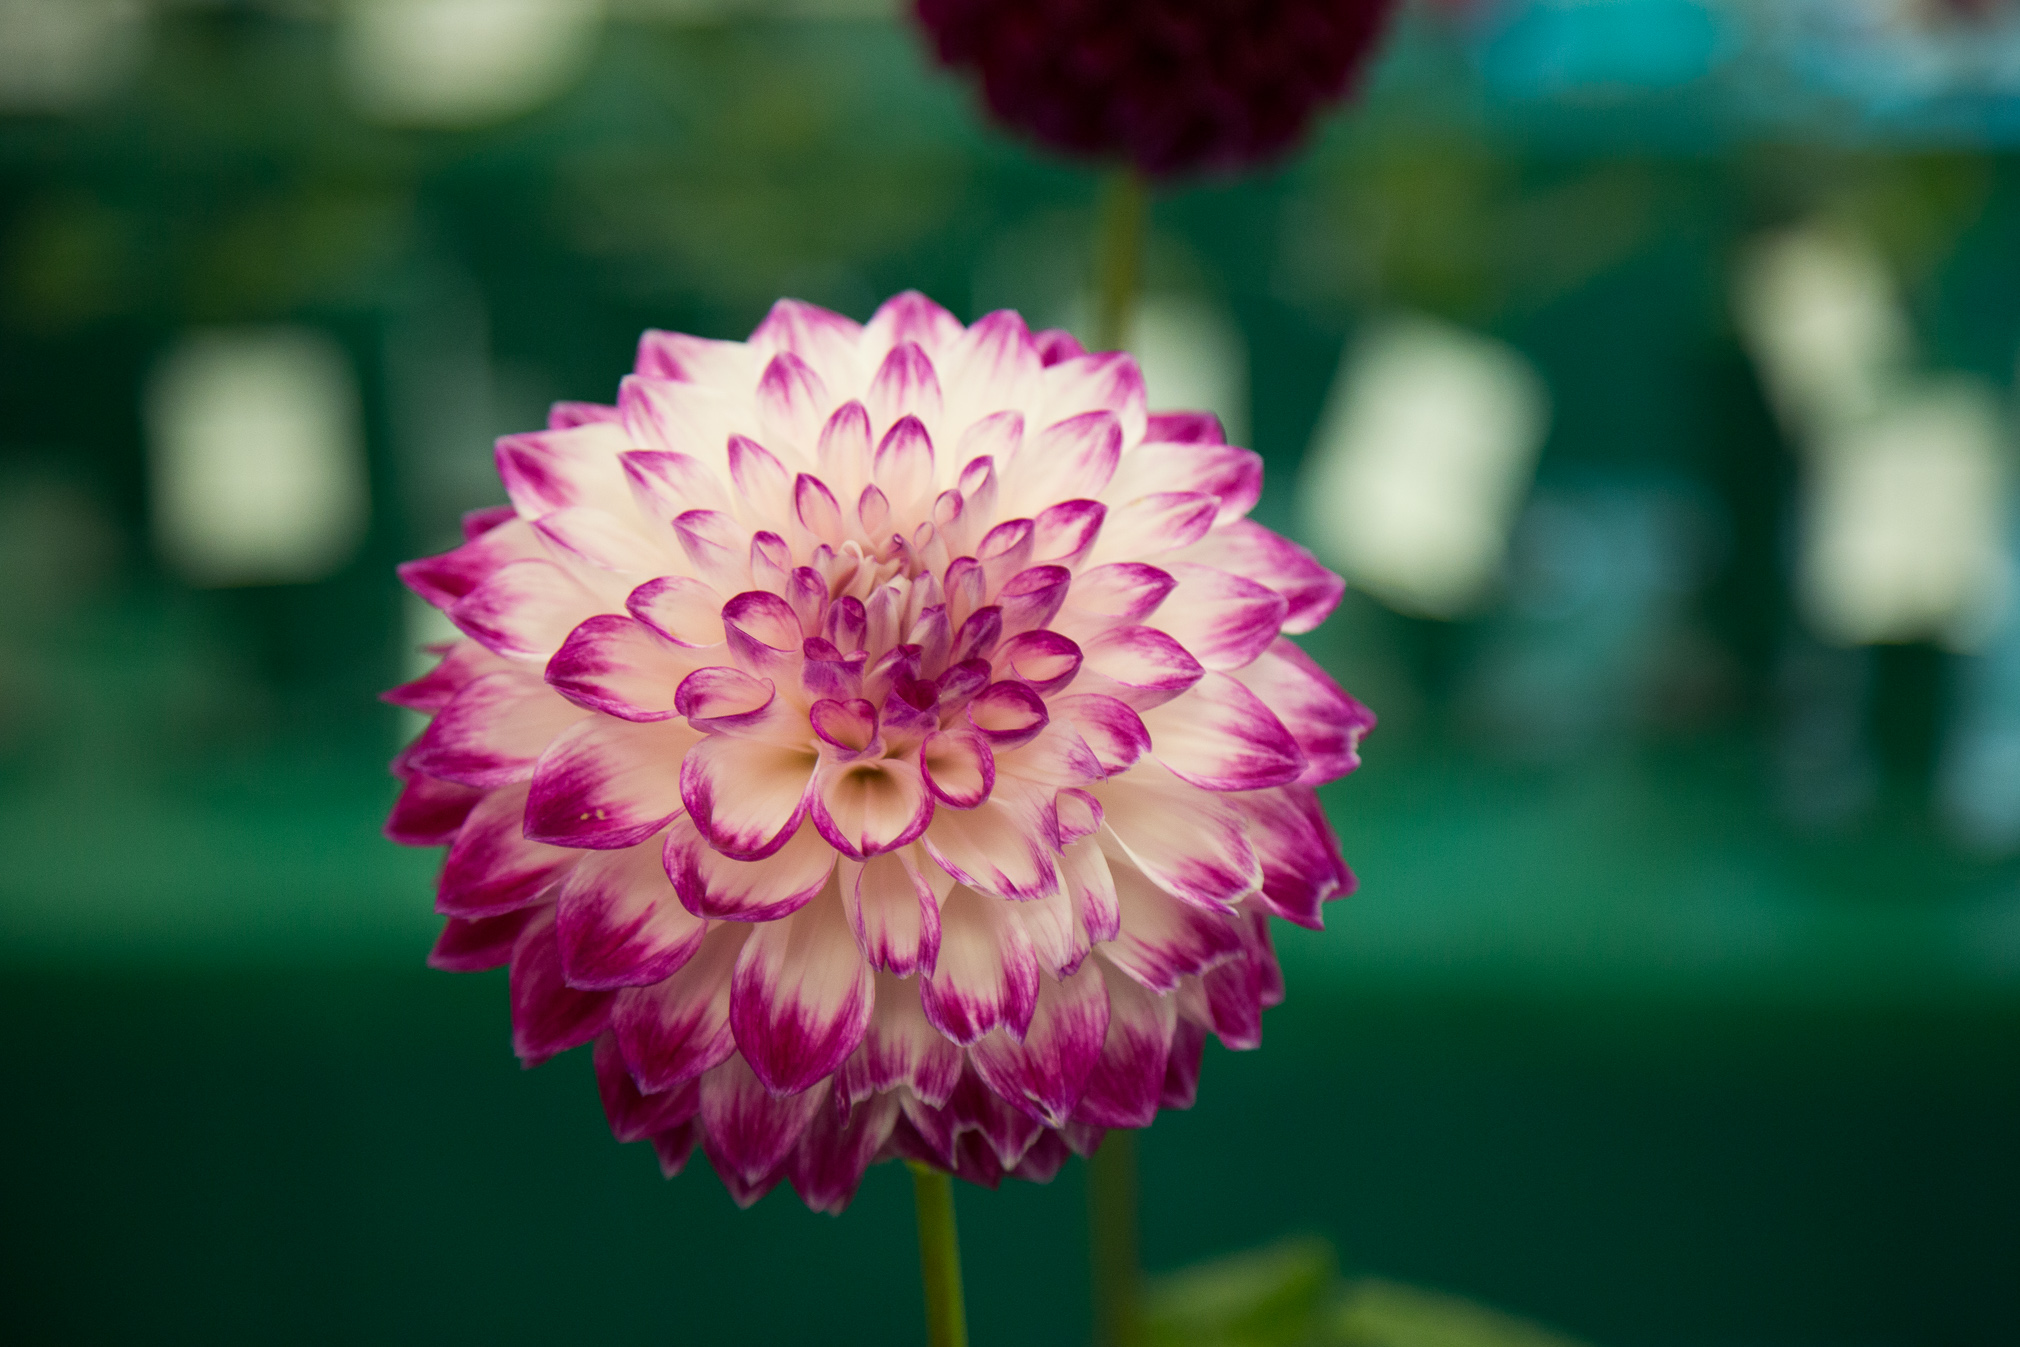 Portrait of a white and pink dahlia